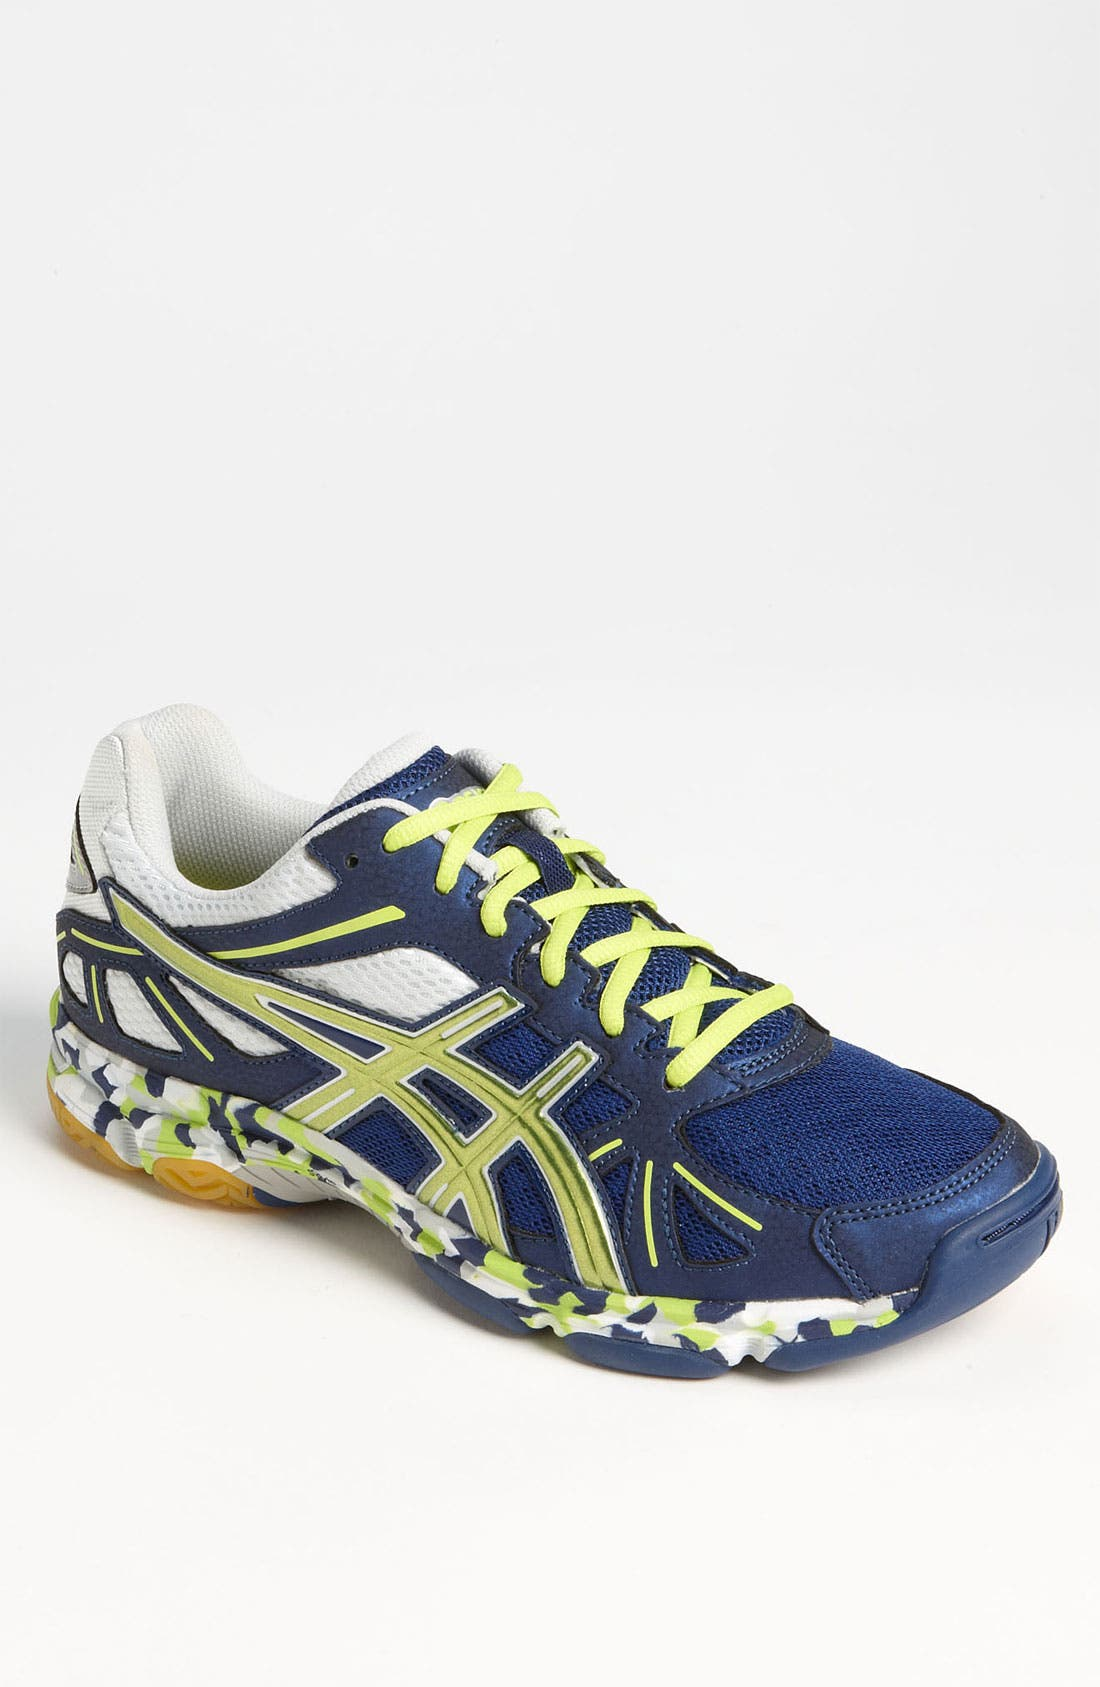 Main Image - ASICS® 'GEL-Flashpoint' Volleyball Shoe (Men) (Online Only)